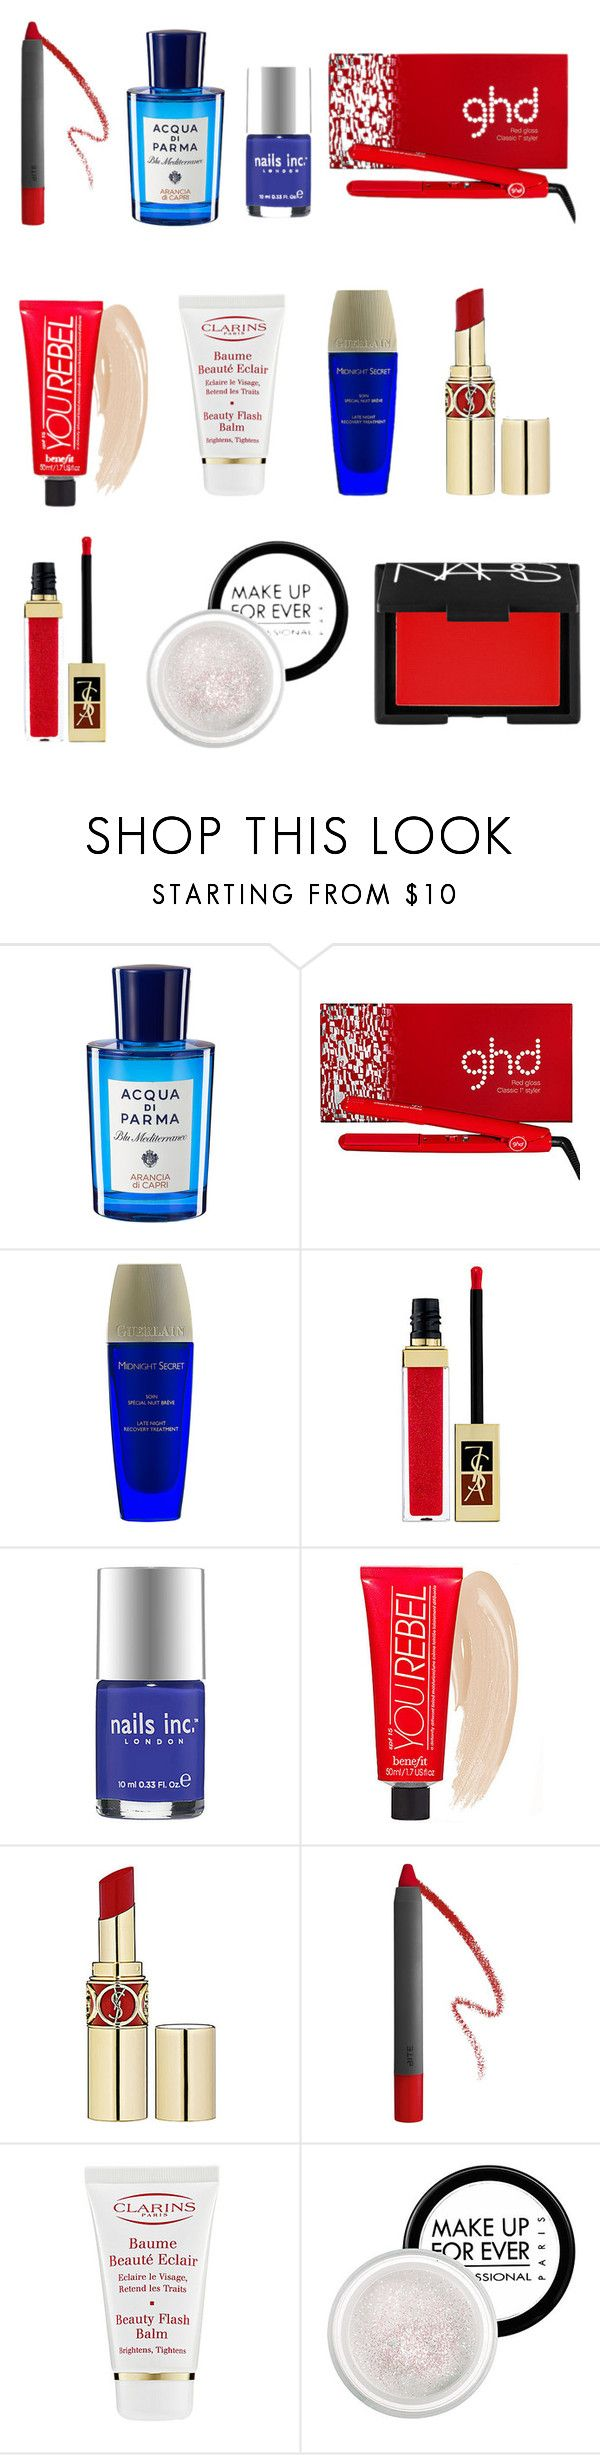 Star dust nail lacquer guerlain 25 -  Fit For A Firecracker By Sephora Liked On Polyvore Featuring Acqua Di Parma